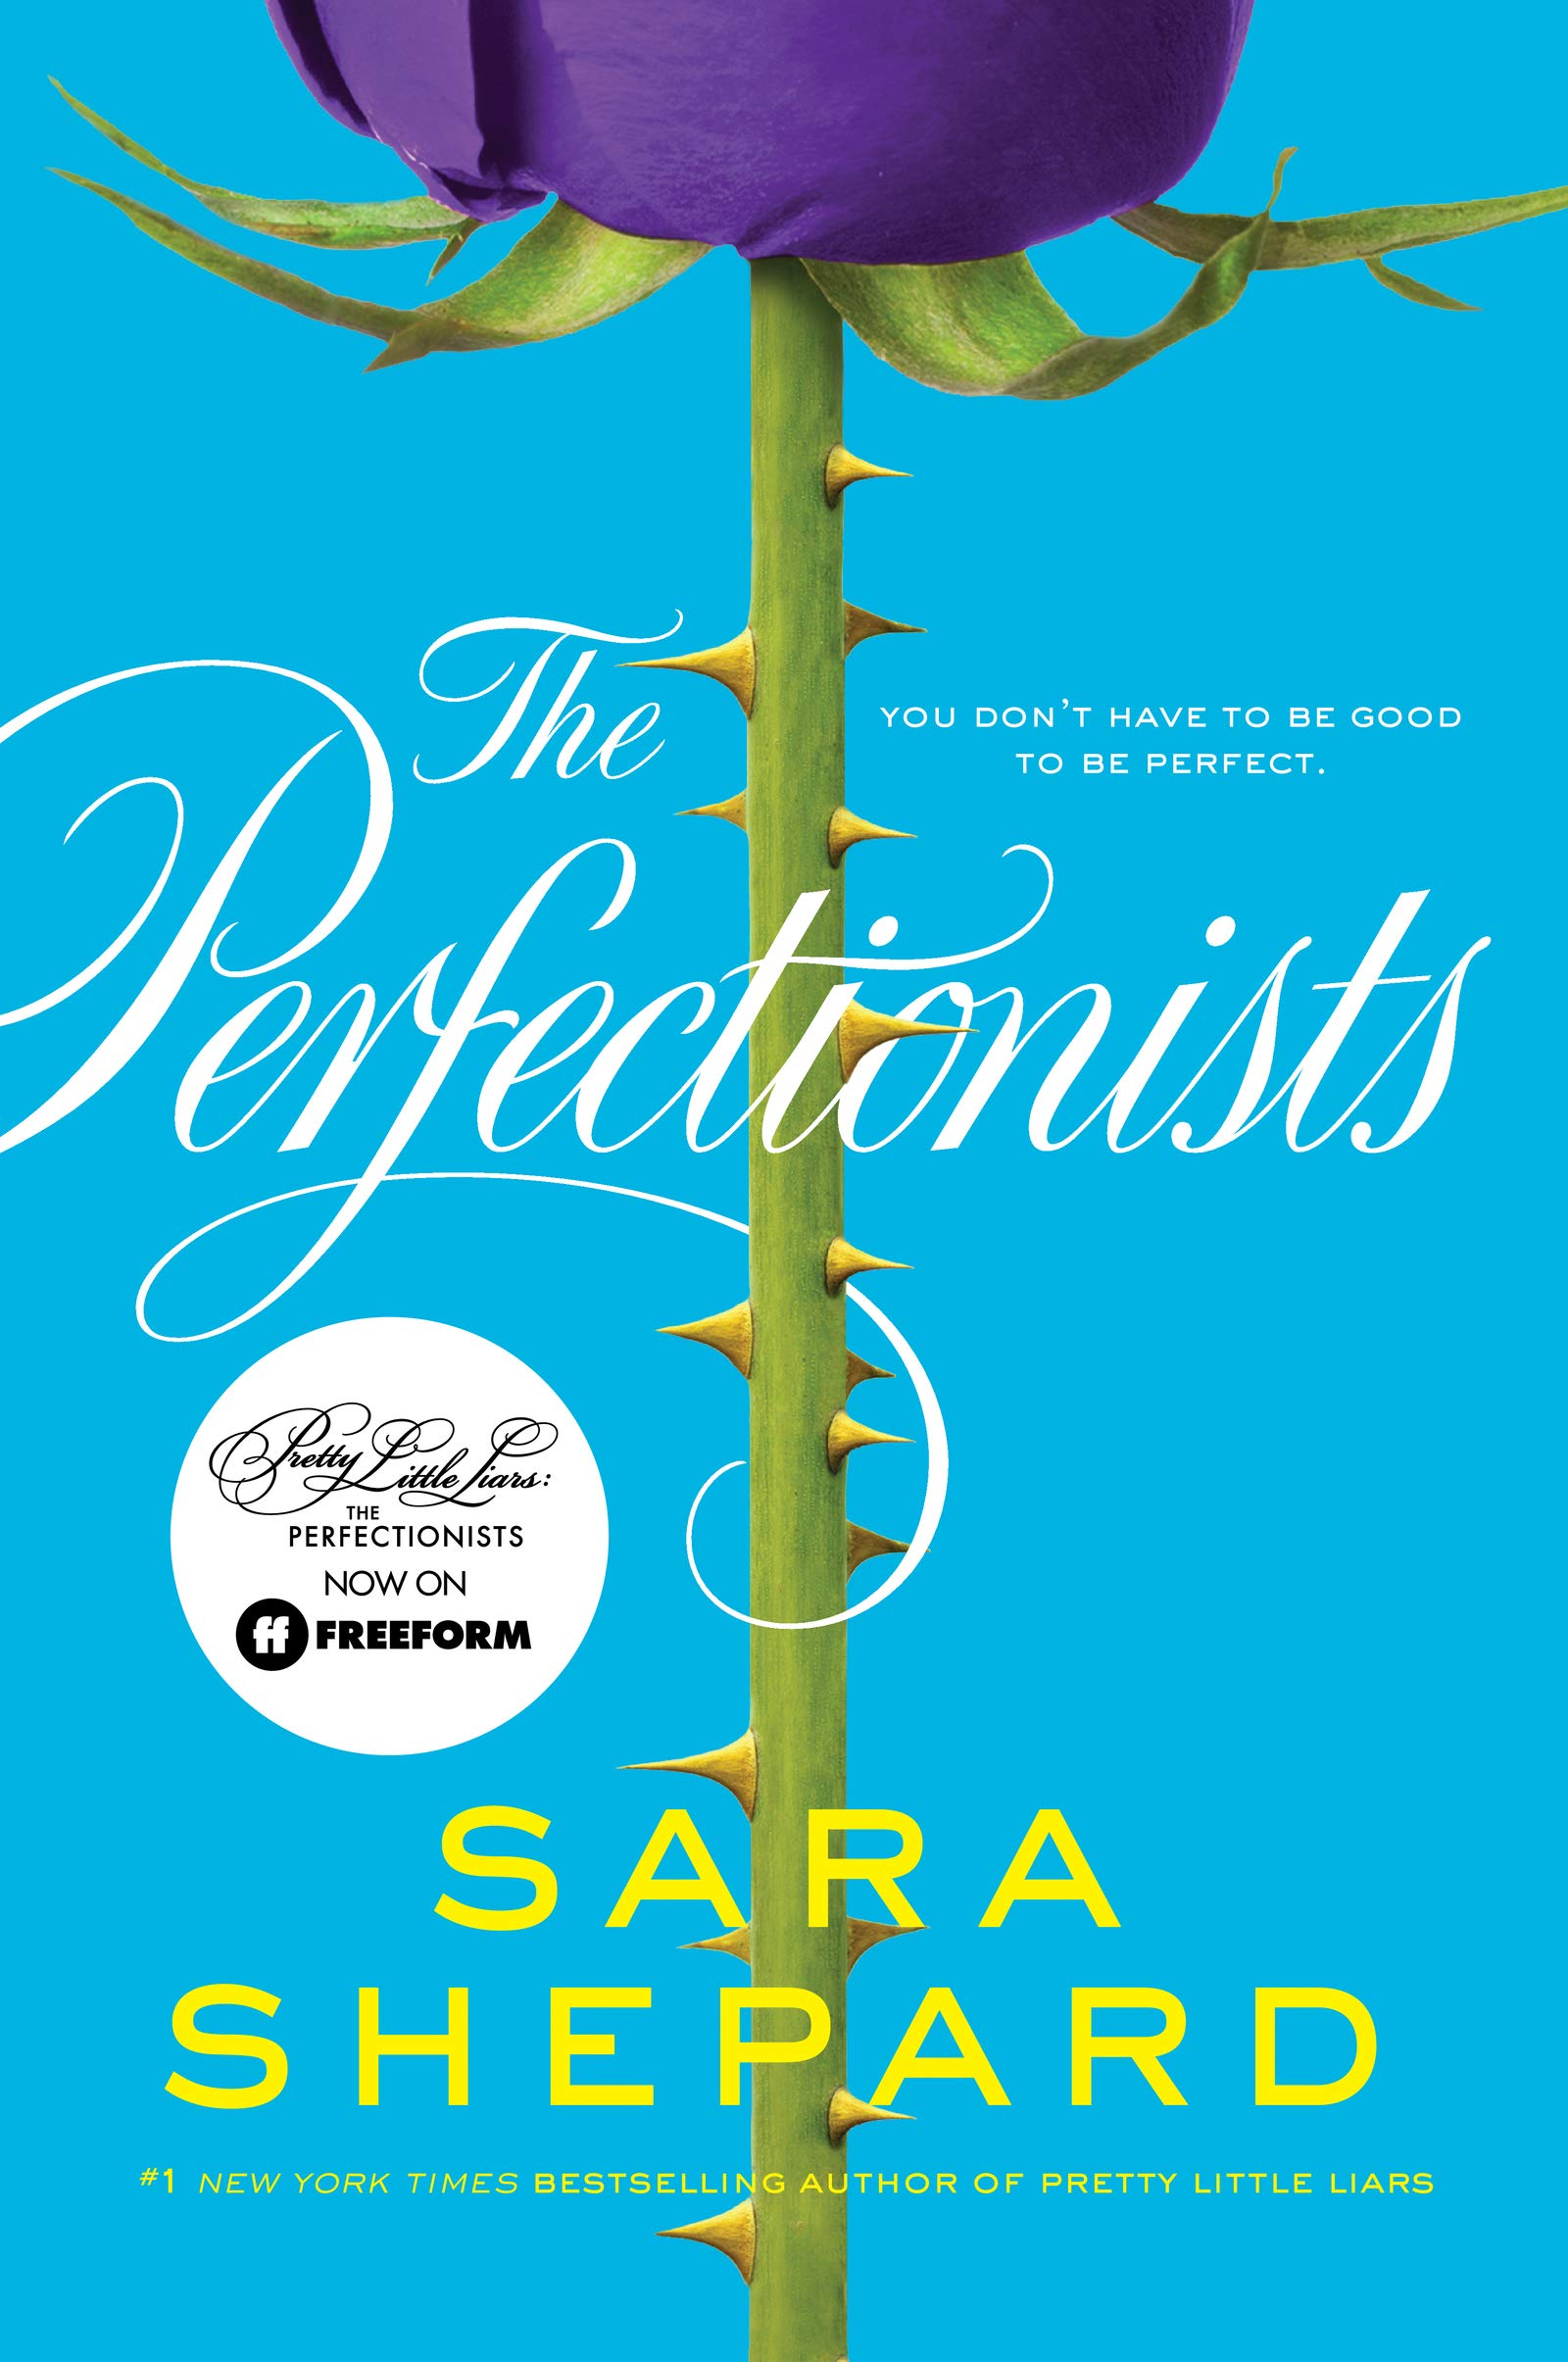 Amazon com: The Perfectionists (9780062074508): Sara Shepard